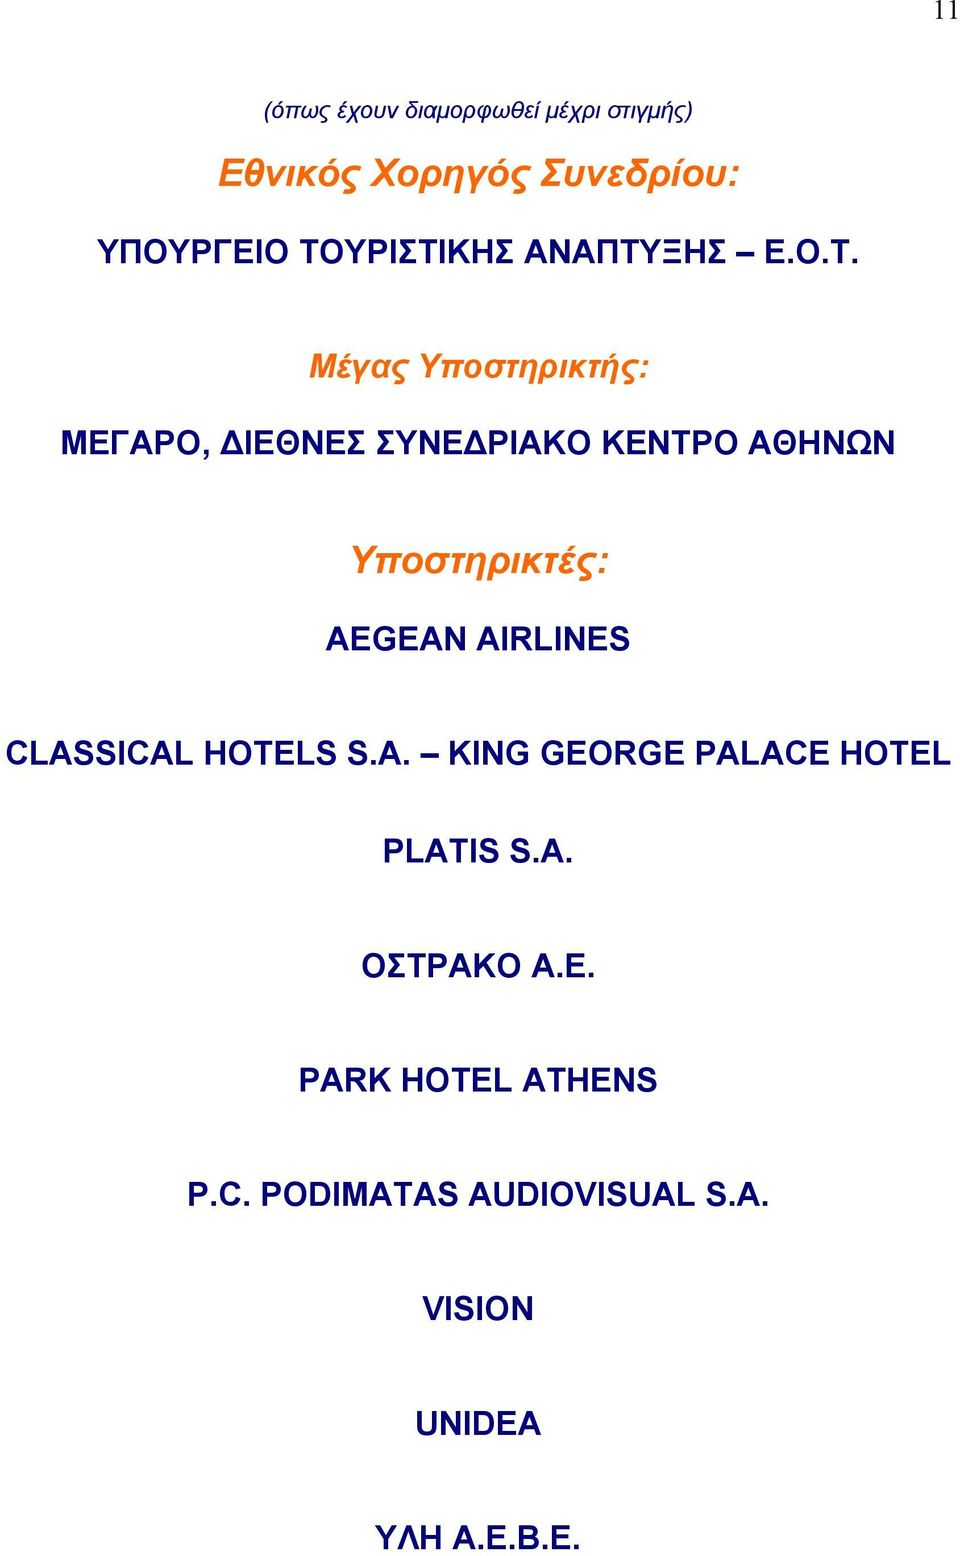 ΑΘΗΝΩΝ Υποστηρικτές: AEGEAN AIRLINES CLASSICAL HOTELS S.A. KING GEORGE PALACE HOTEL PLATIS S.